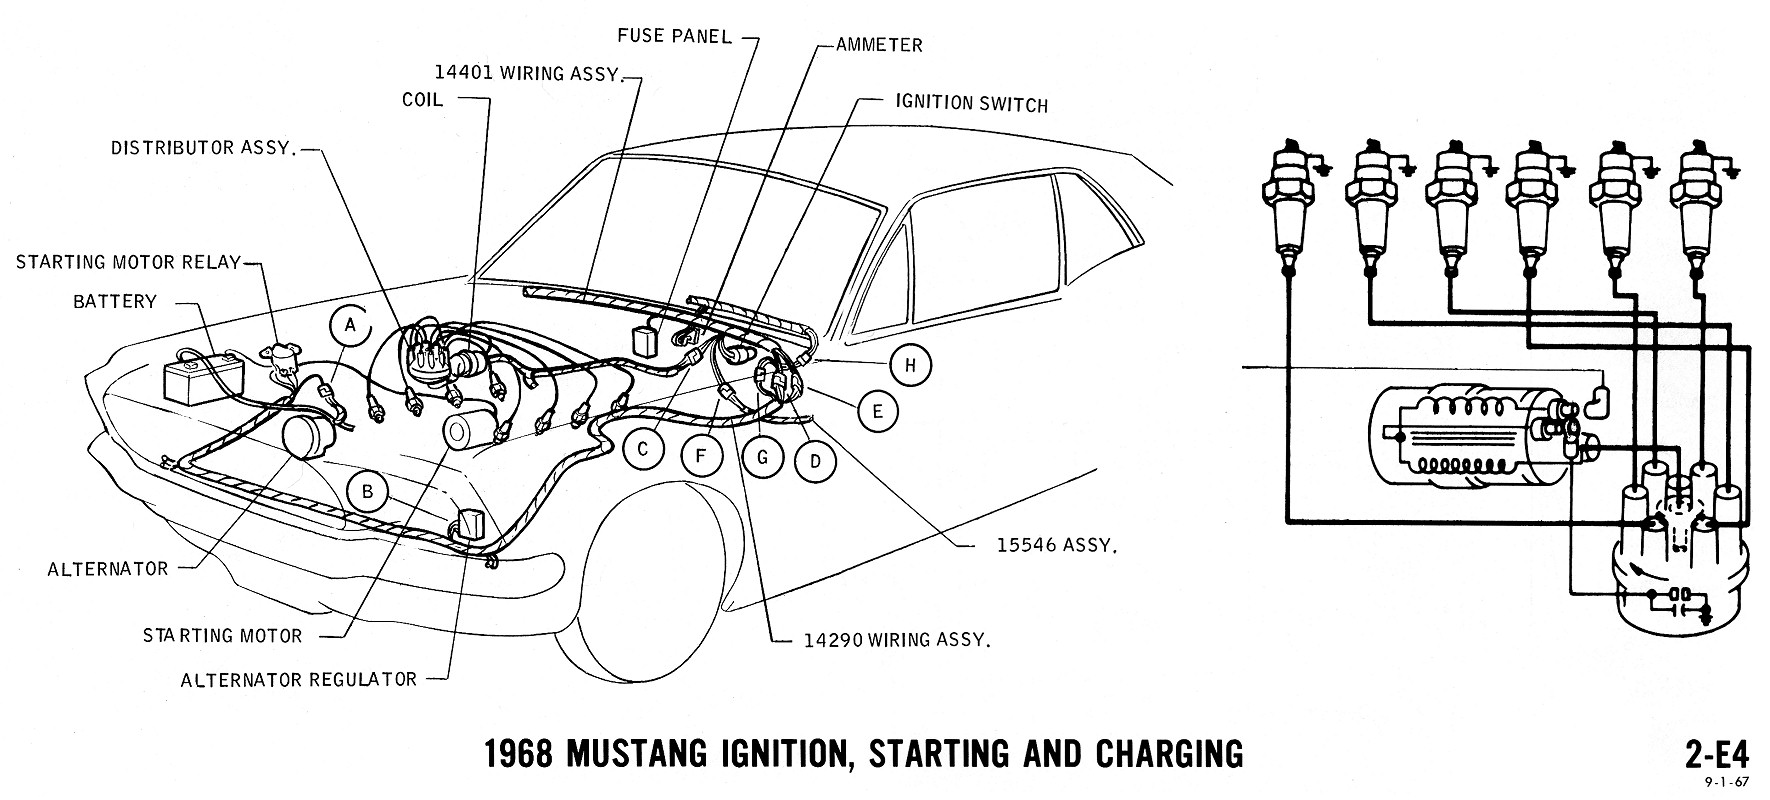 1968 mustang wiring diagram ignition starting charging 2 1968 mustang wiring diagrams and vacuum schematics average joe best wiring harness for 1967 mustang at soozxer.org